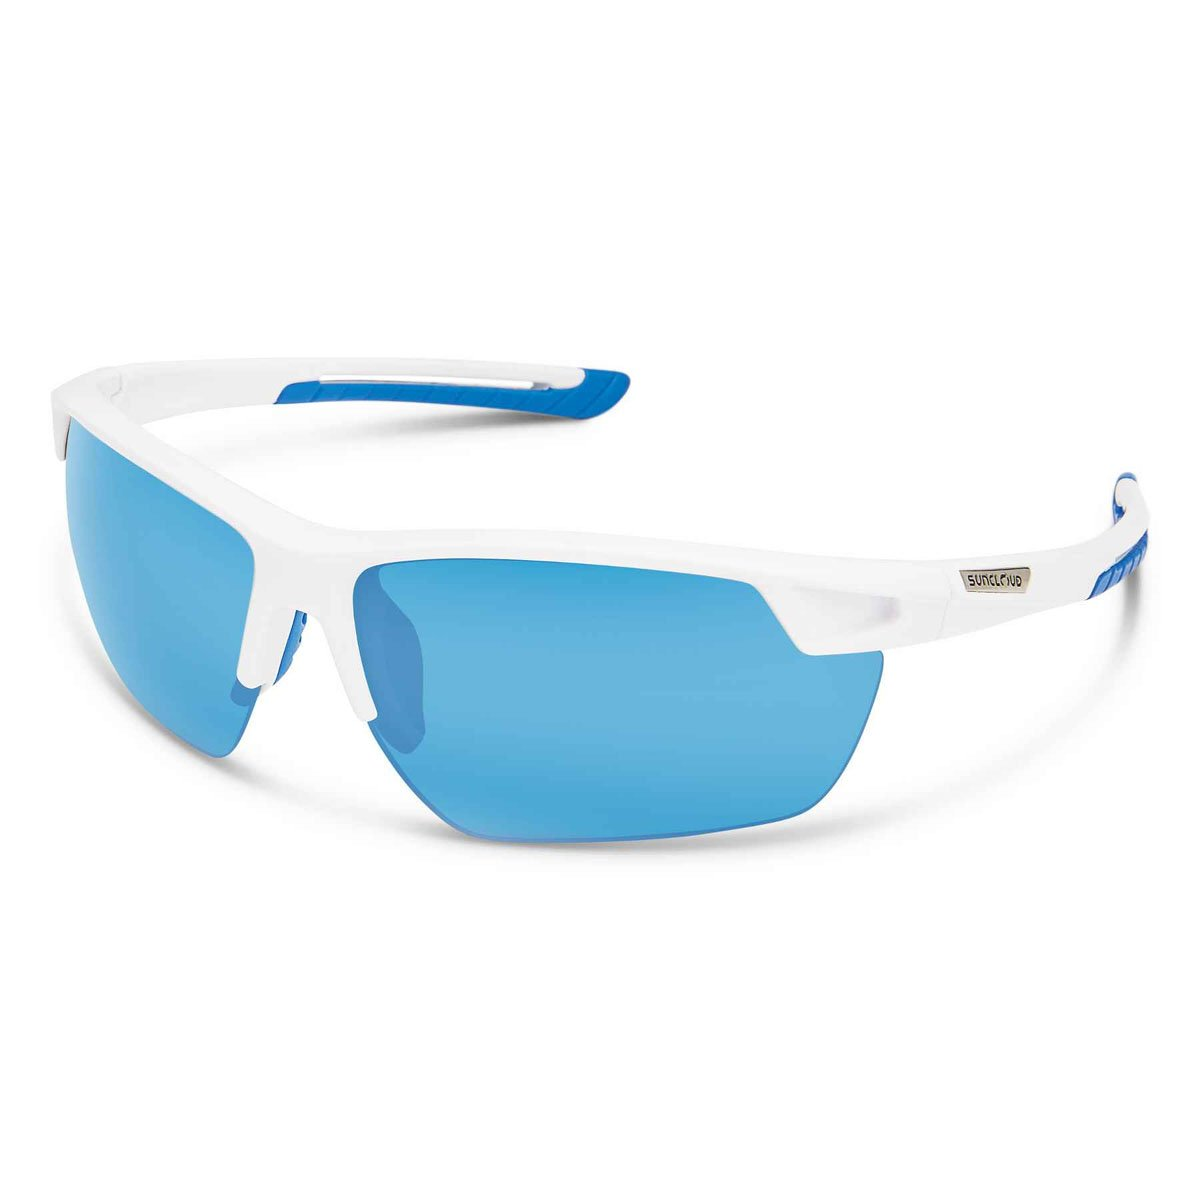 92ba8820f00 Amazon.com   Suncloud Contender Polarized Sunglasses